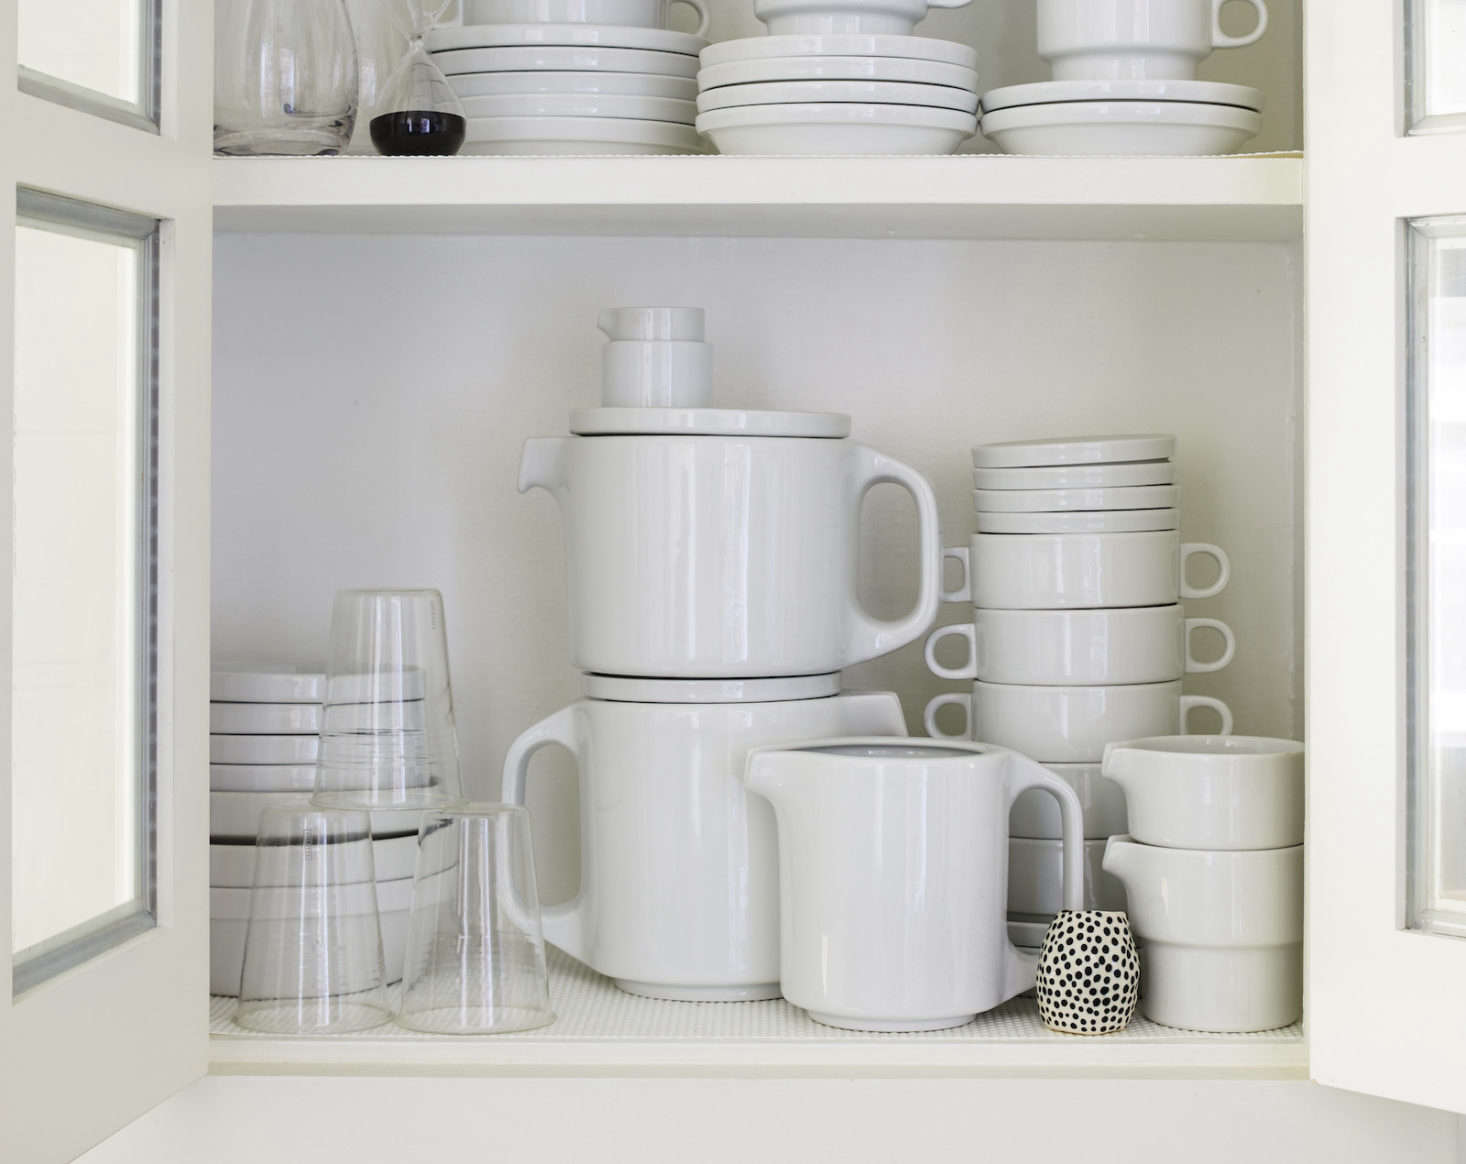 Axe is an avid collector of stackable TC0 tableware byHansRoericht and has amassed quite the collection over the years. The design is part of the Museum of Modern Art&#8